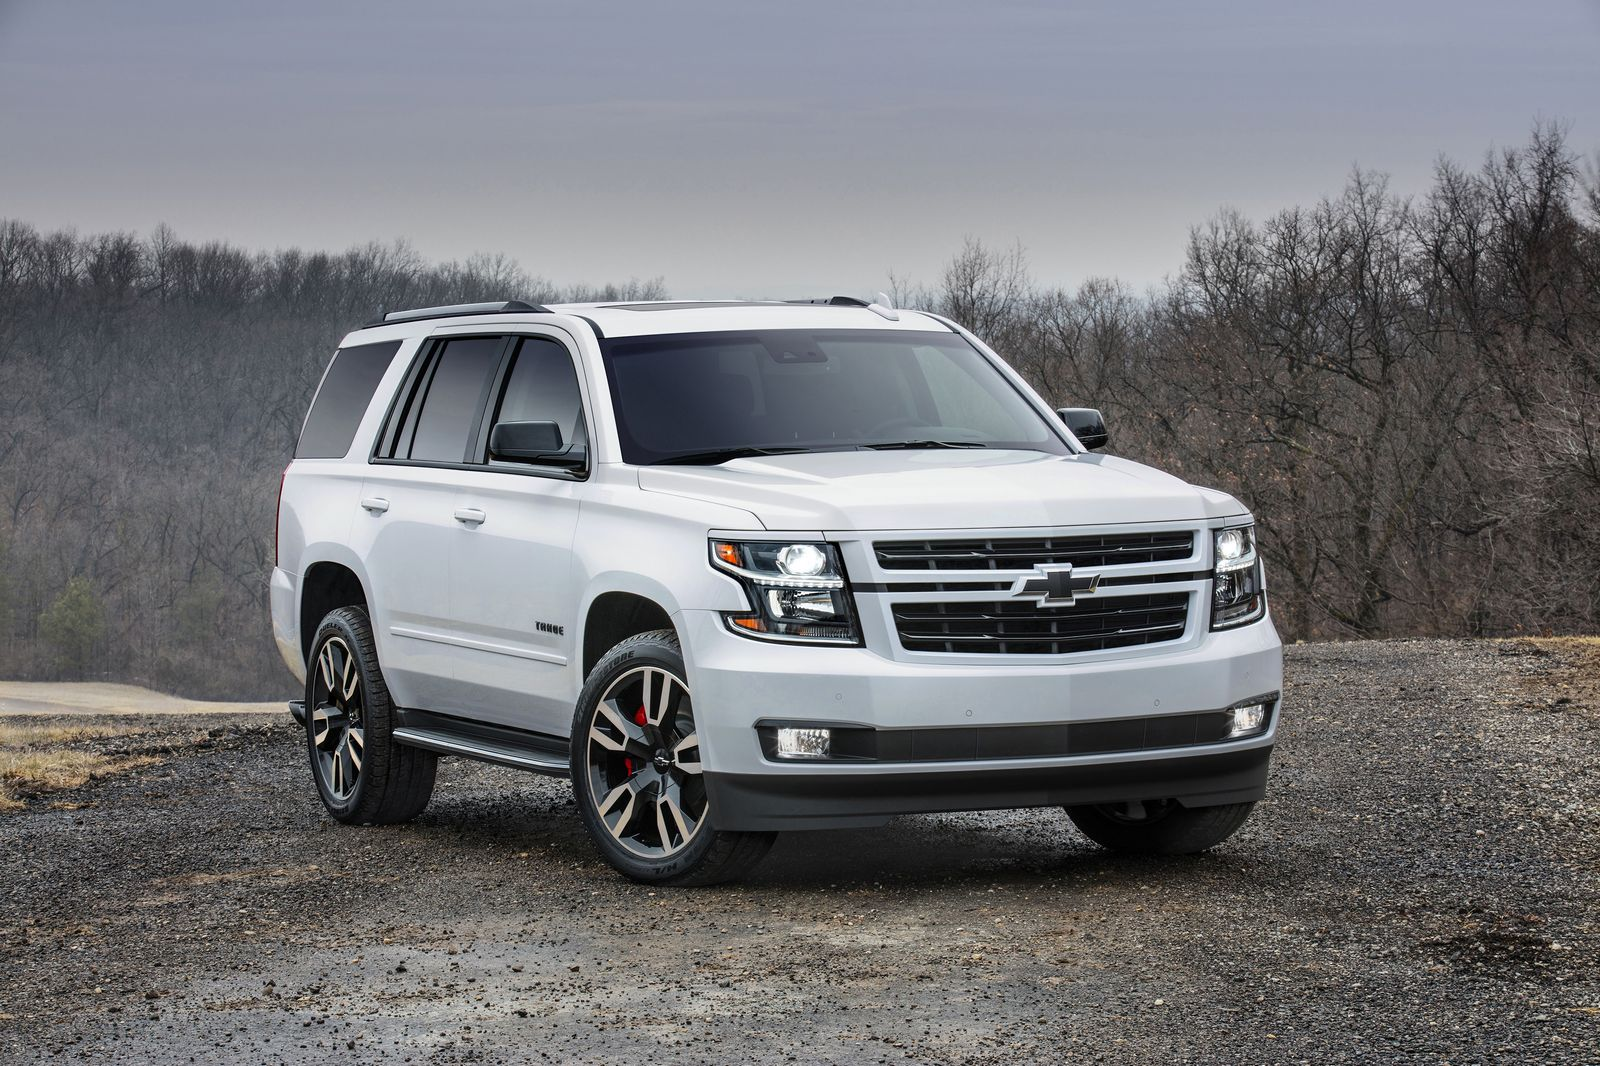 2018 chevrolet tahoe and suburban get sporty rst package. Black Bedroom Furniture Sets. Home Design Ideas